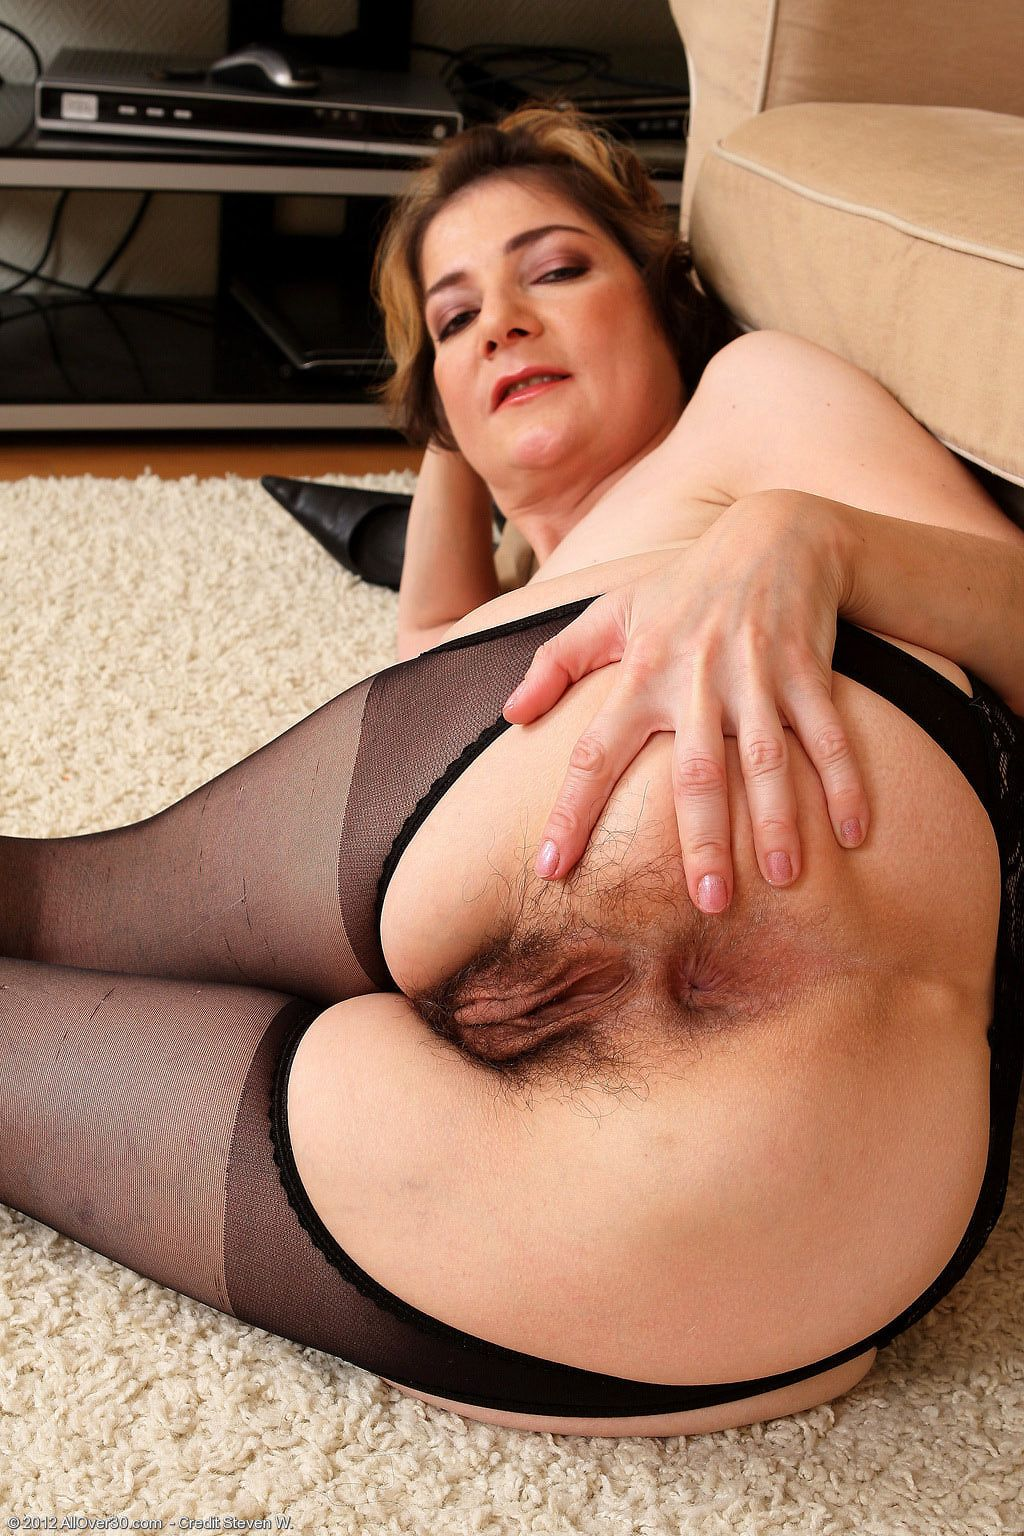 that necessary, will handjob moms clips are mistaken. Let's